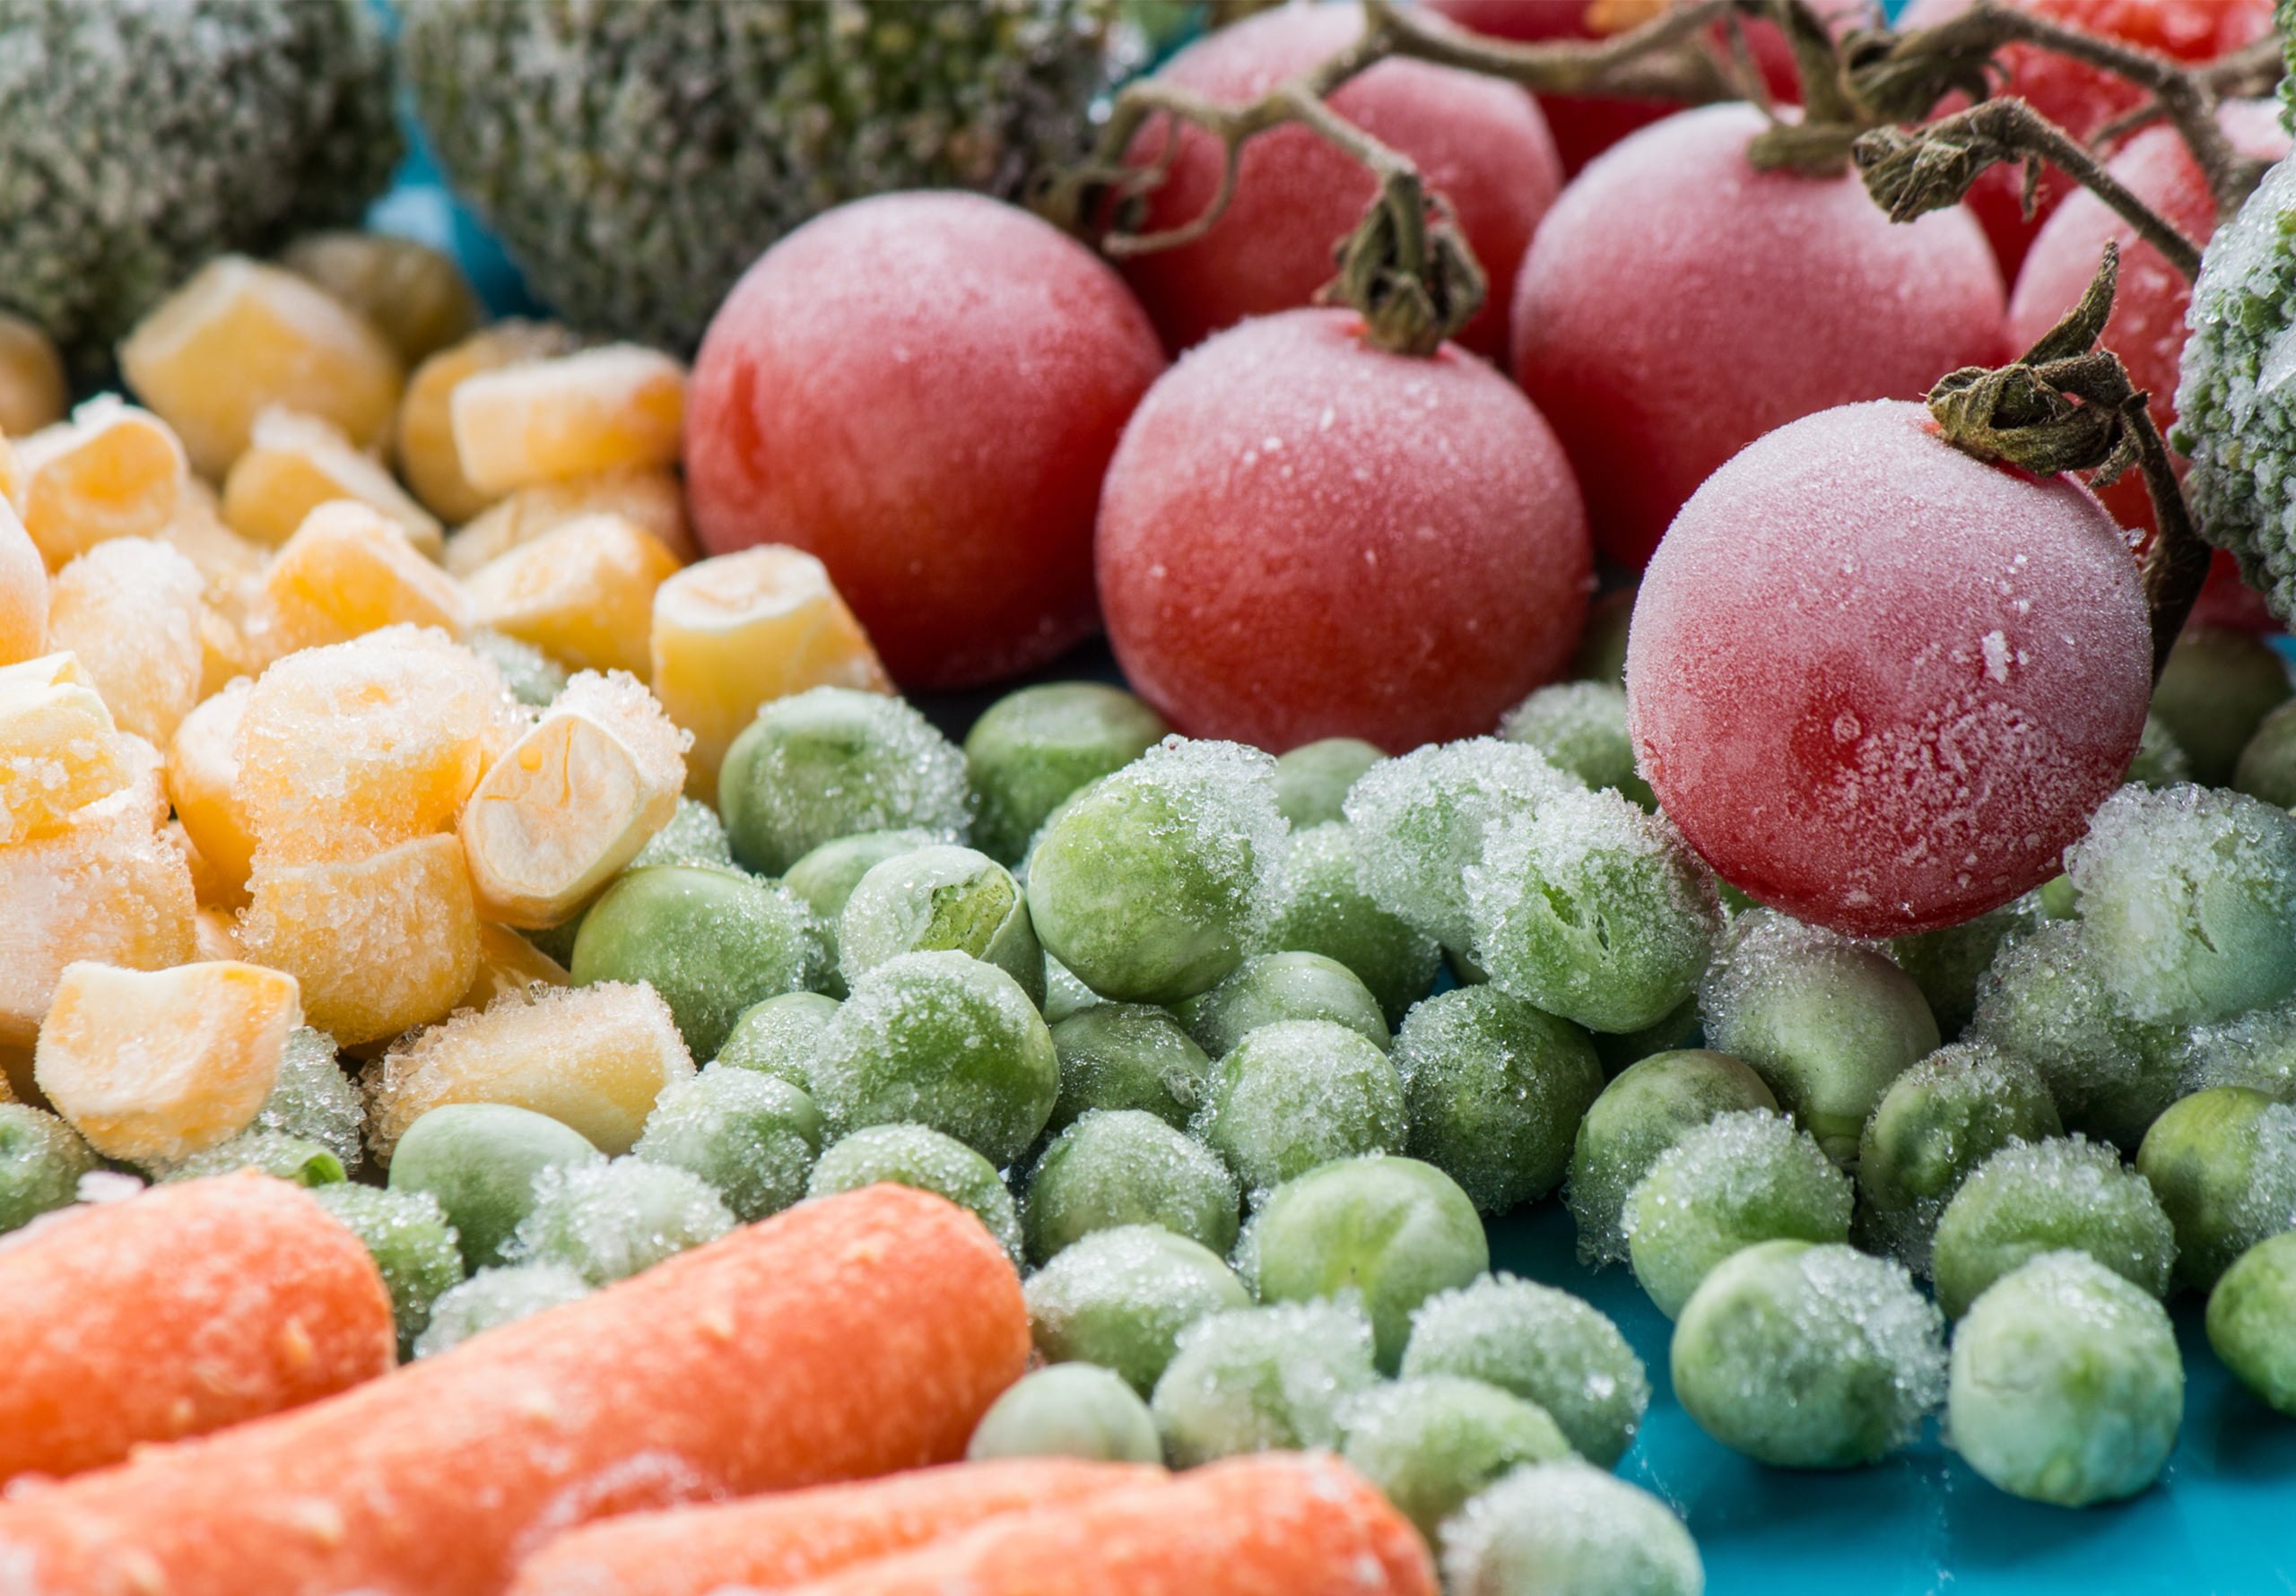 Case Study: The Growth of Frozen Food Market